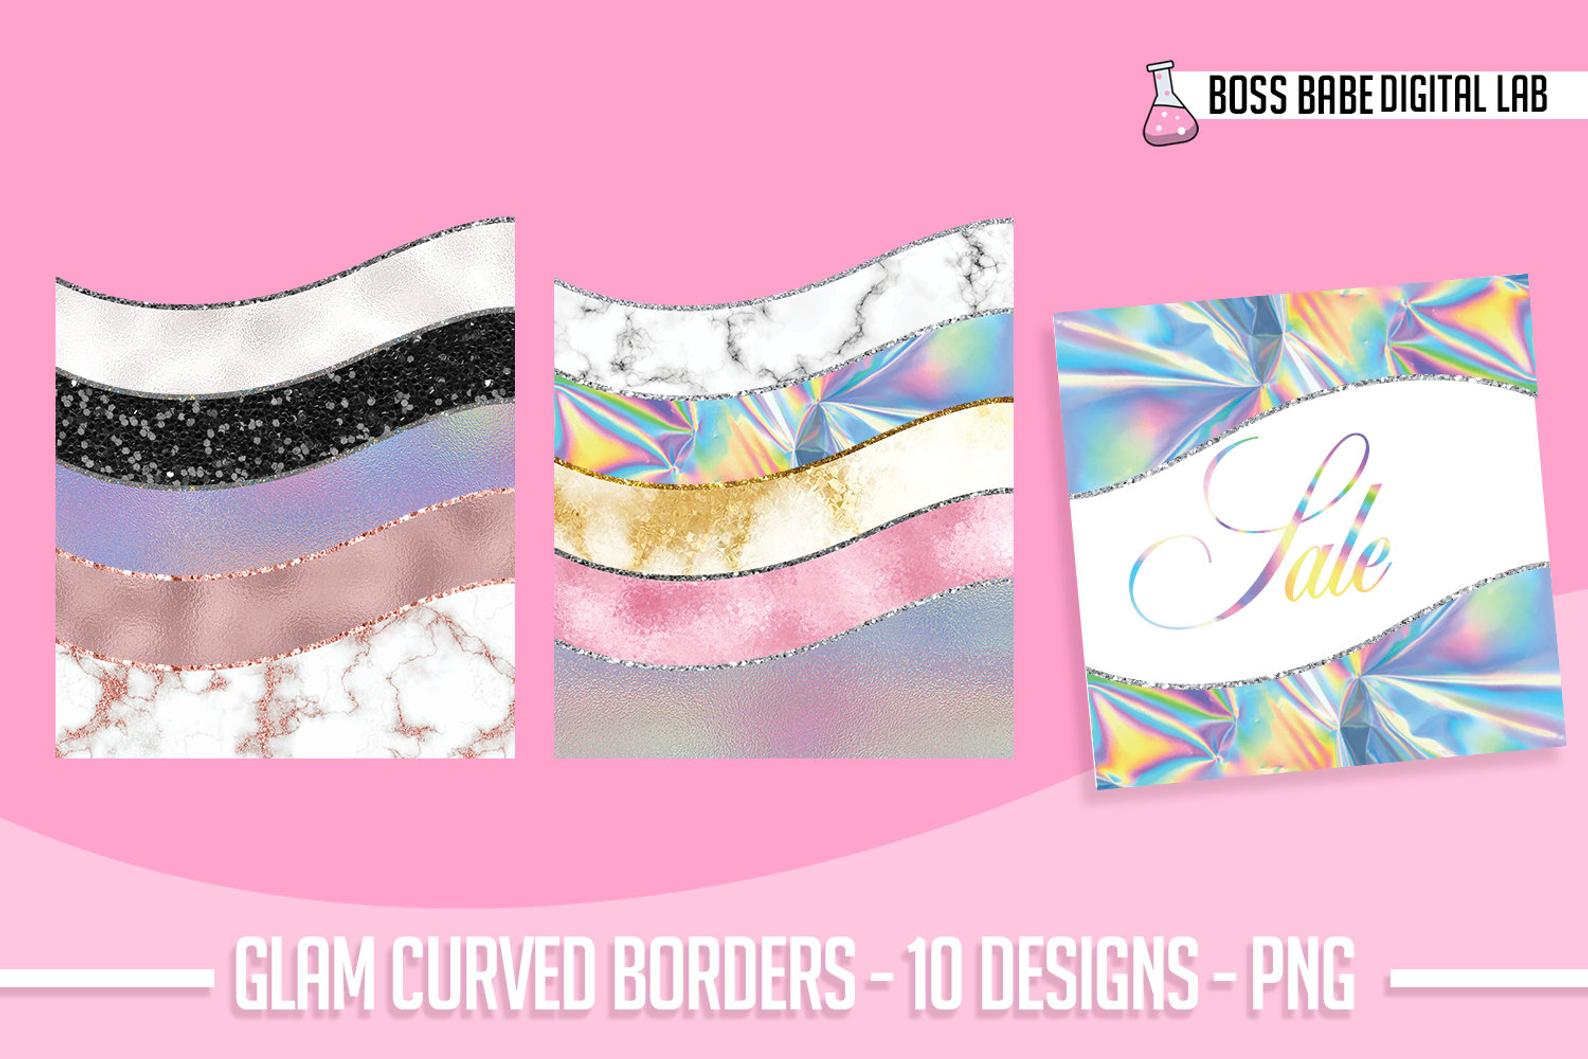 Download Free Glam Curved Border Clipart Graphic By Bossbabedigitallab Creative Fabrica for Cricut Explore, Silhouette and other cutting machines.